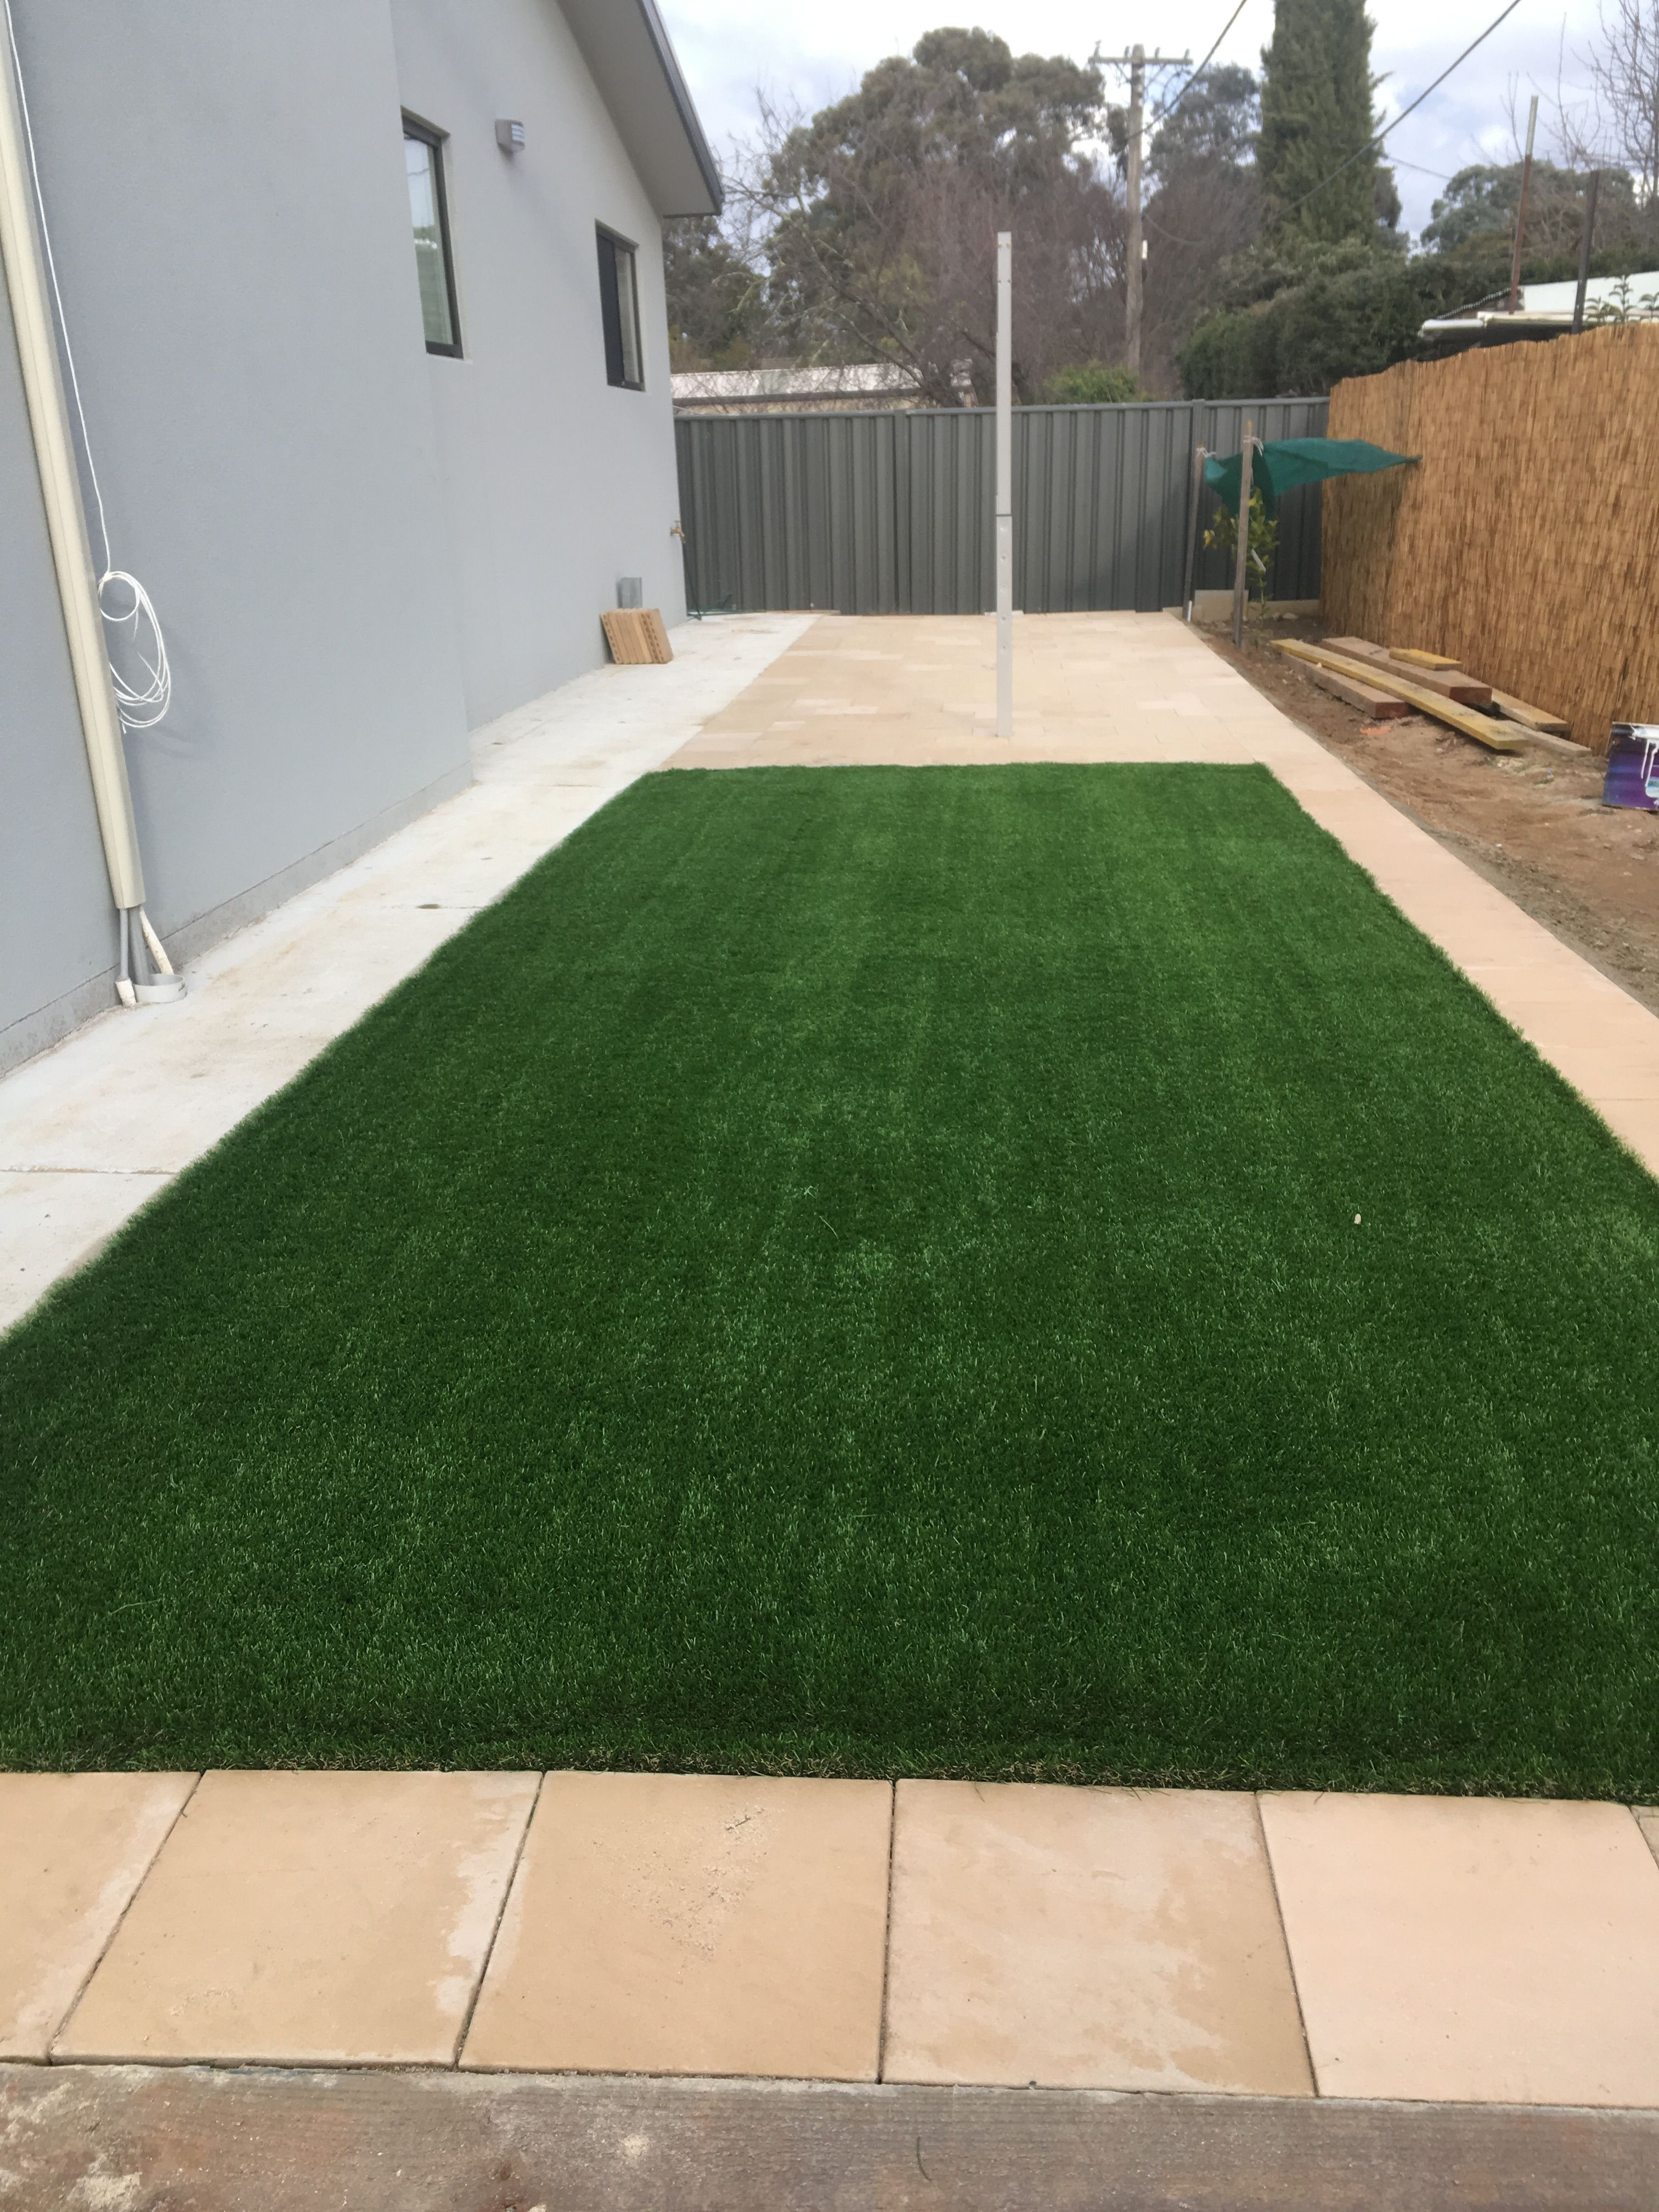 clothesline area paving and turf synthetic grass and paving